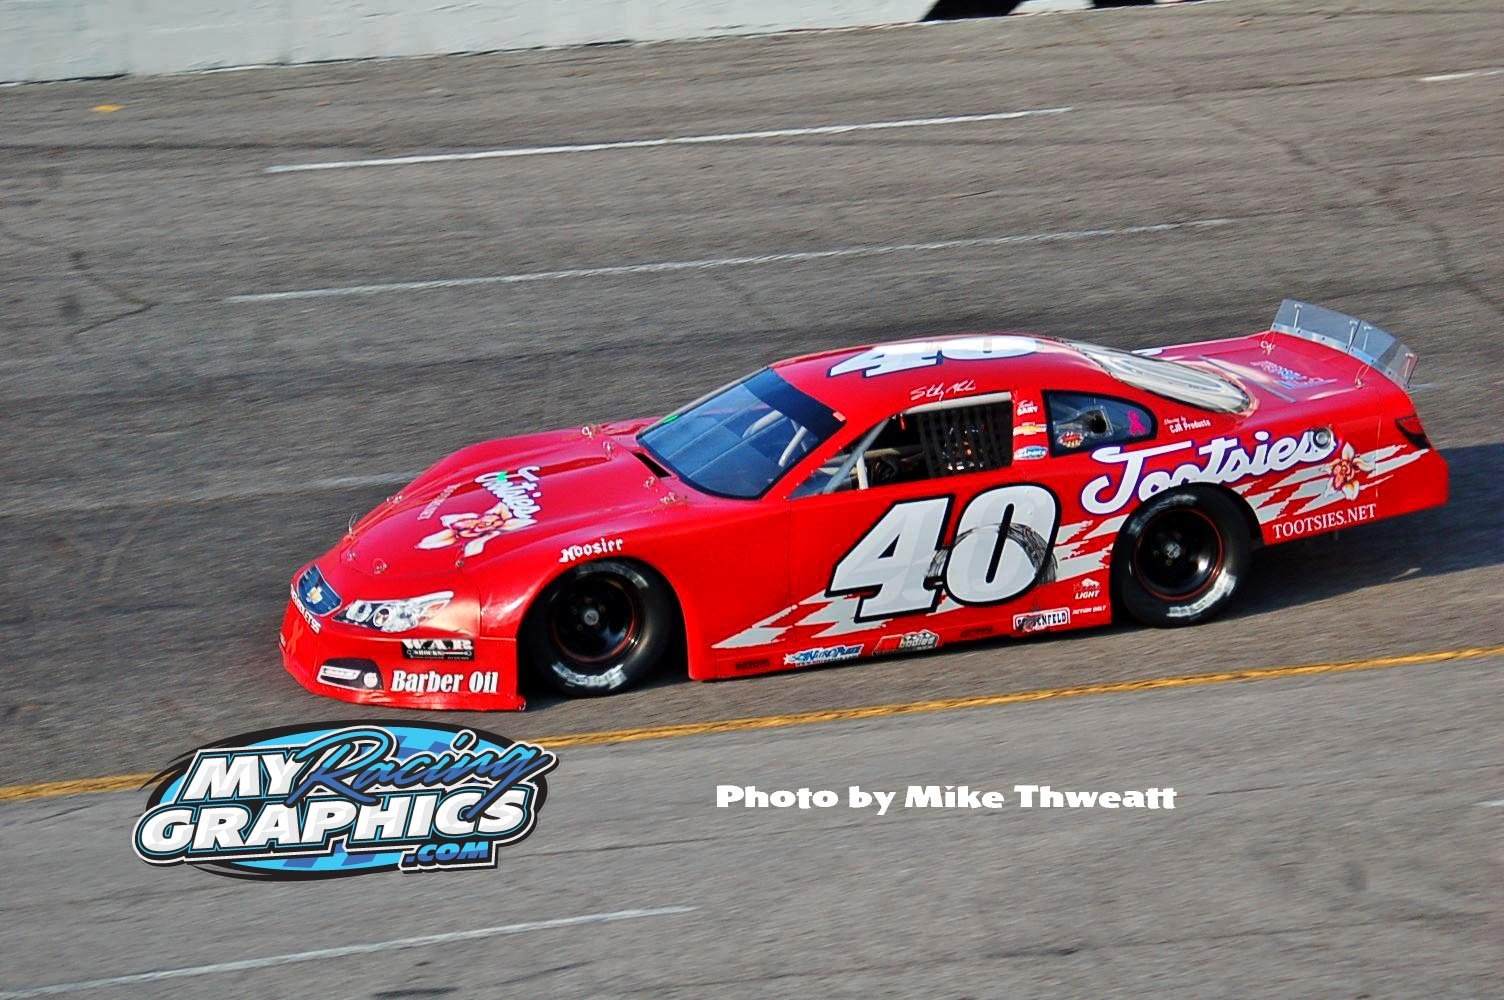 Sterling Marlin Latemodel Graphics